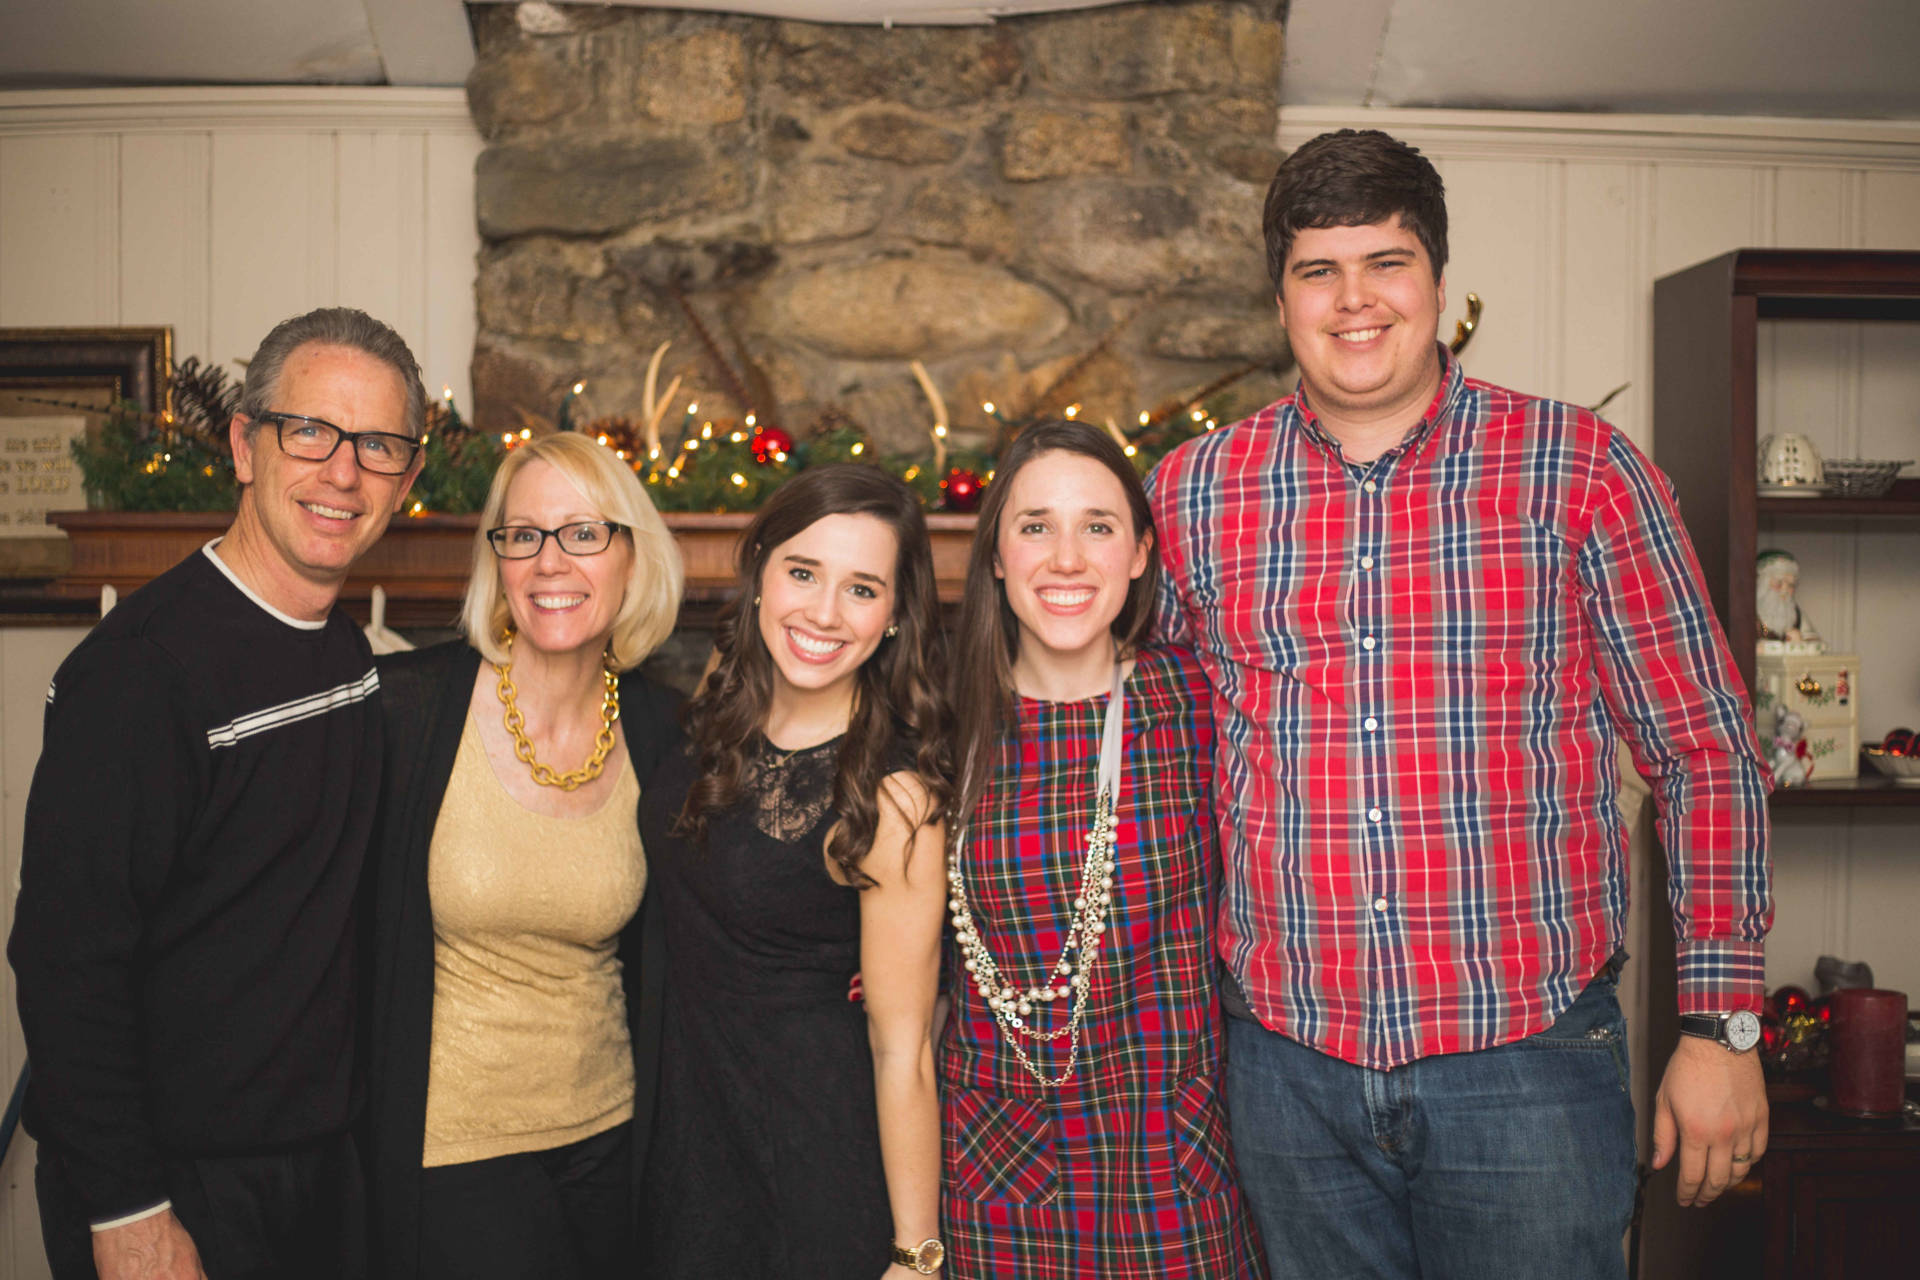 The Laurel Dress in Plaid - Family Photo! Christmas Eve 2015